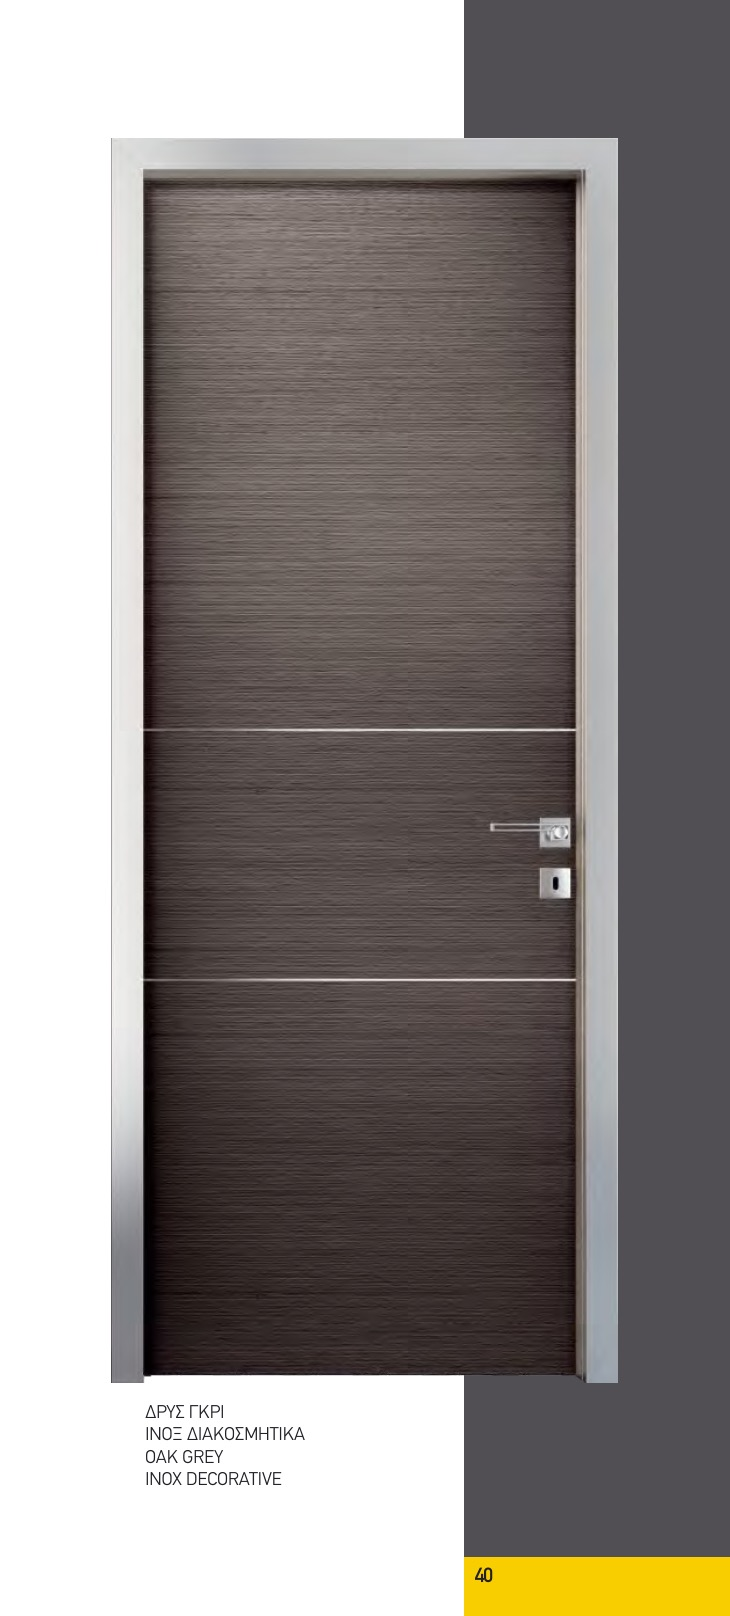 Linear. Oak Grey Inox Decorative